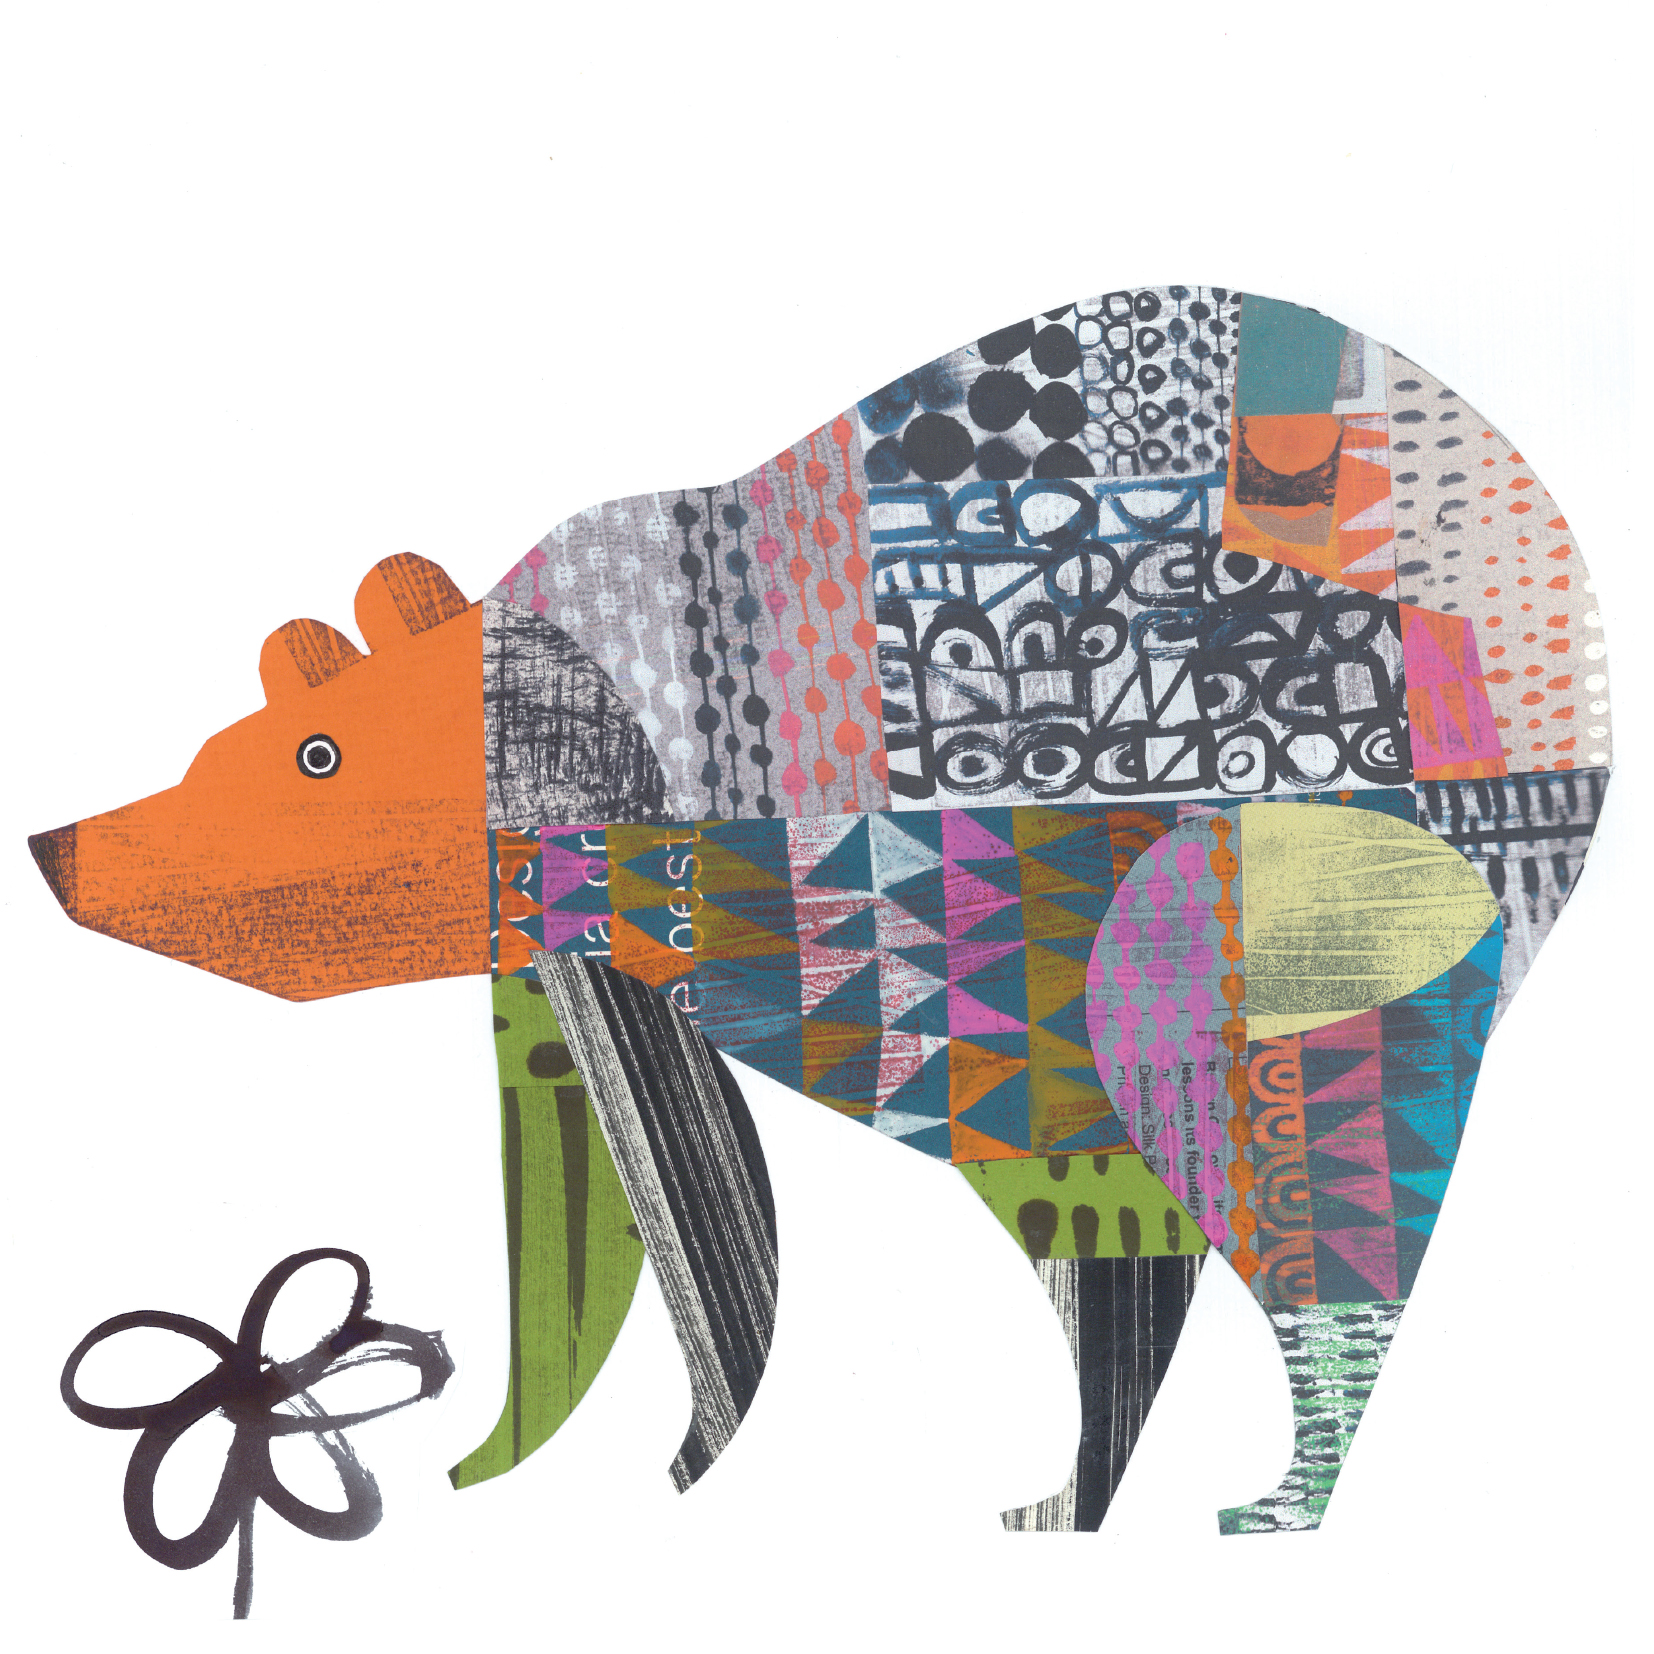 friendly bear     SHOP    mixed media collage, available as a giclee print